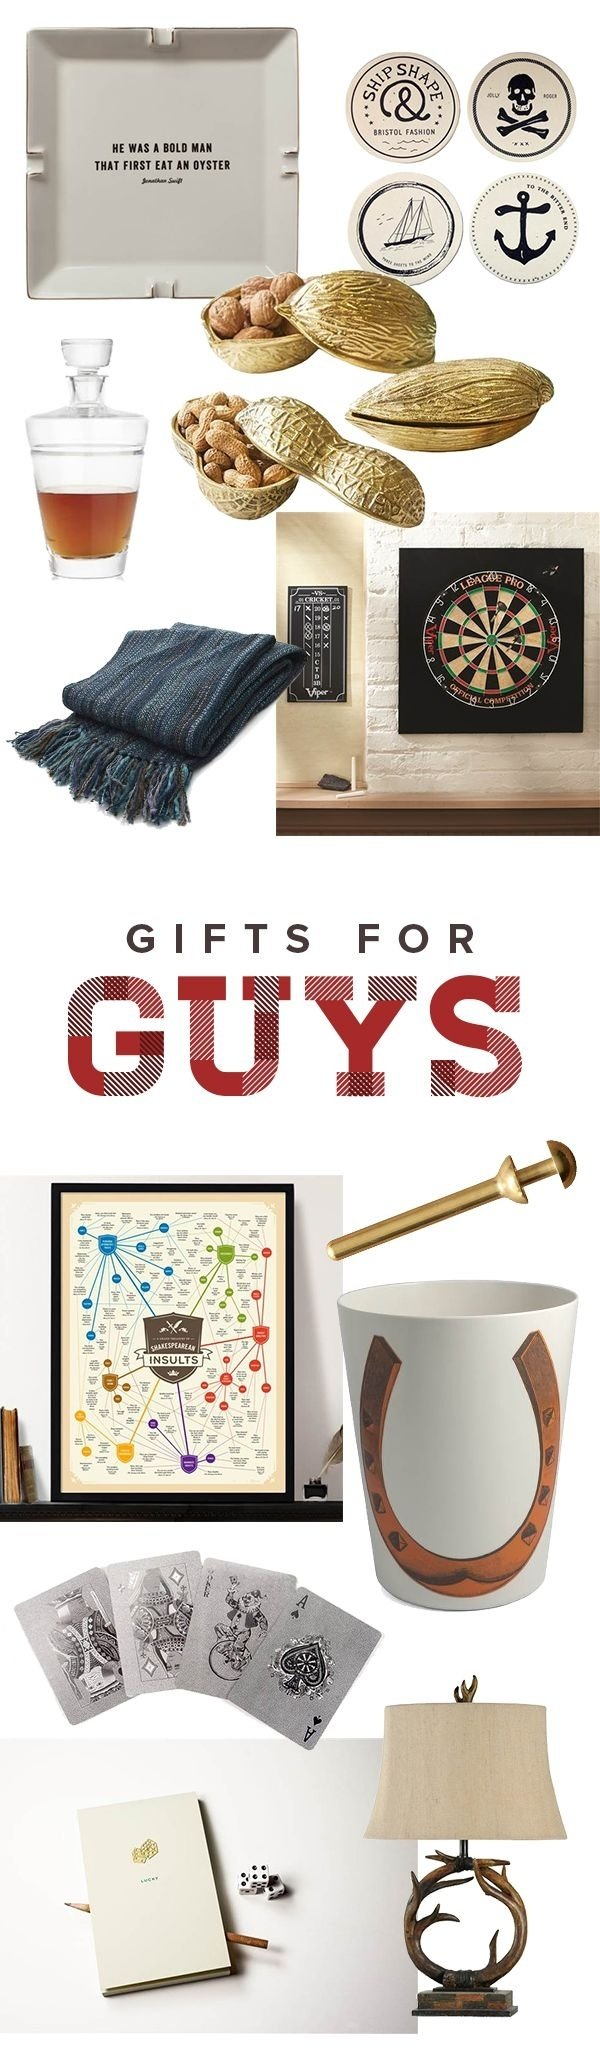 10 Most Recommended Creative Gift Ideas For Men 80 best gift ideas images on pinterest gift ideas best gift ideas 5 2020